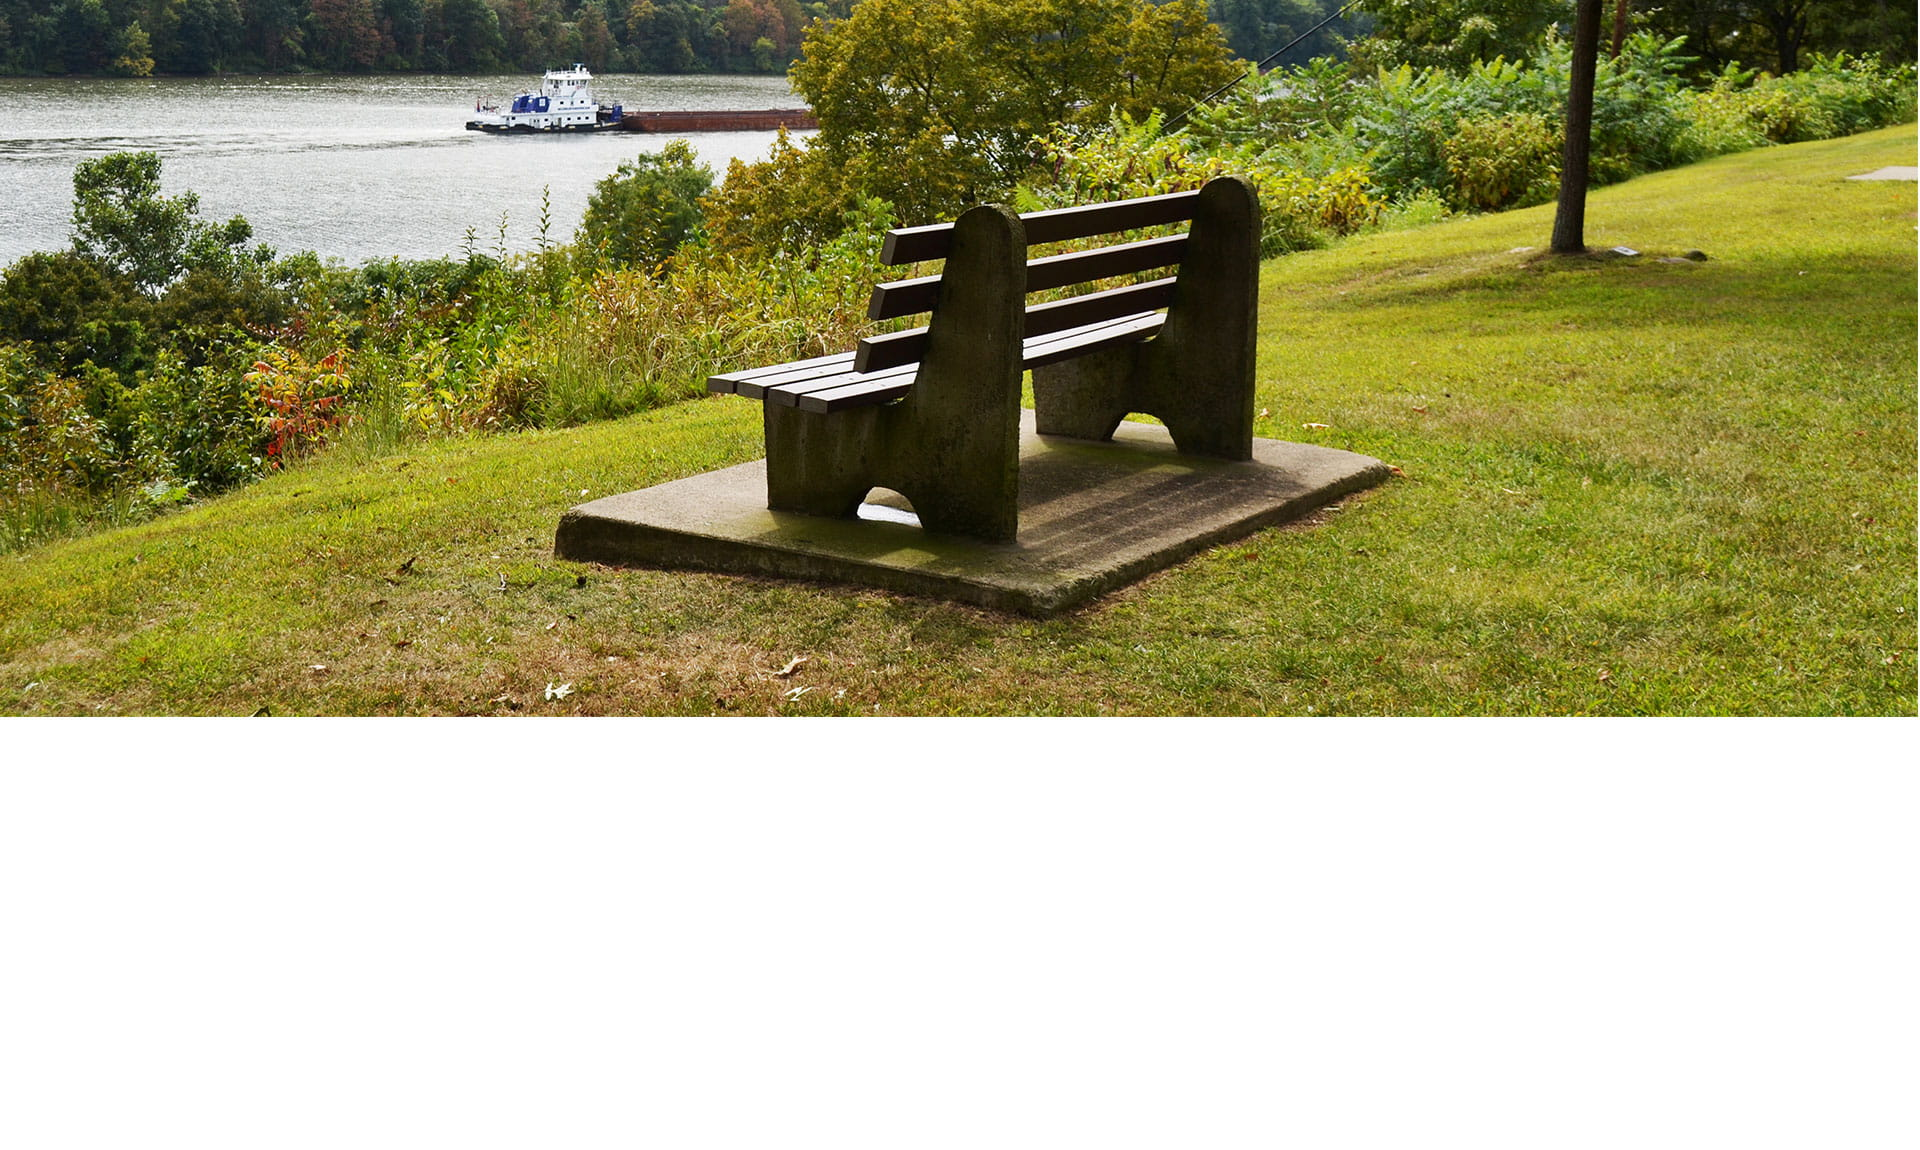 Bench looking across river